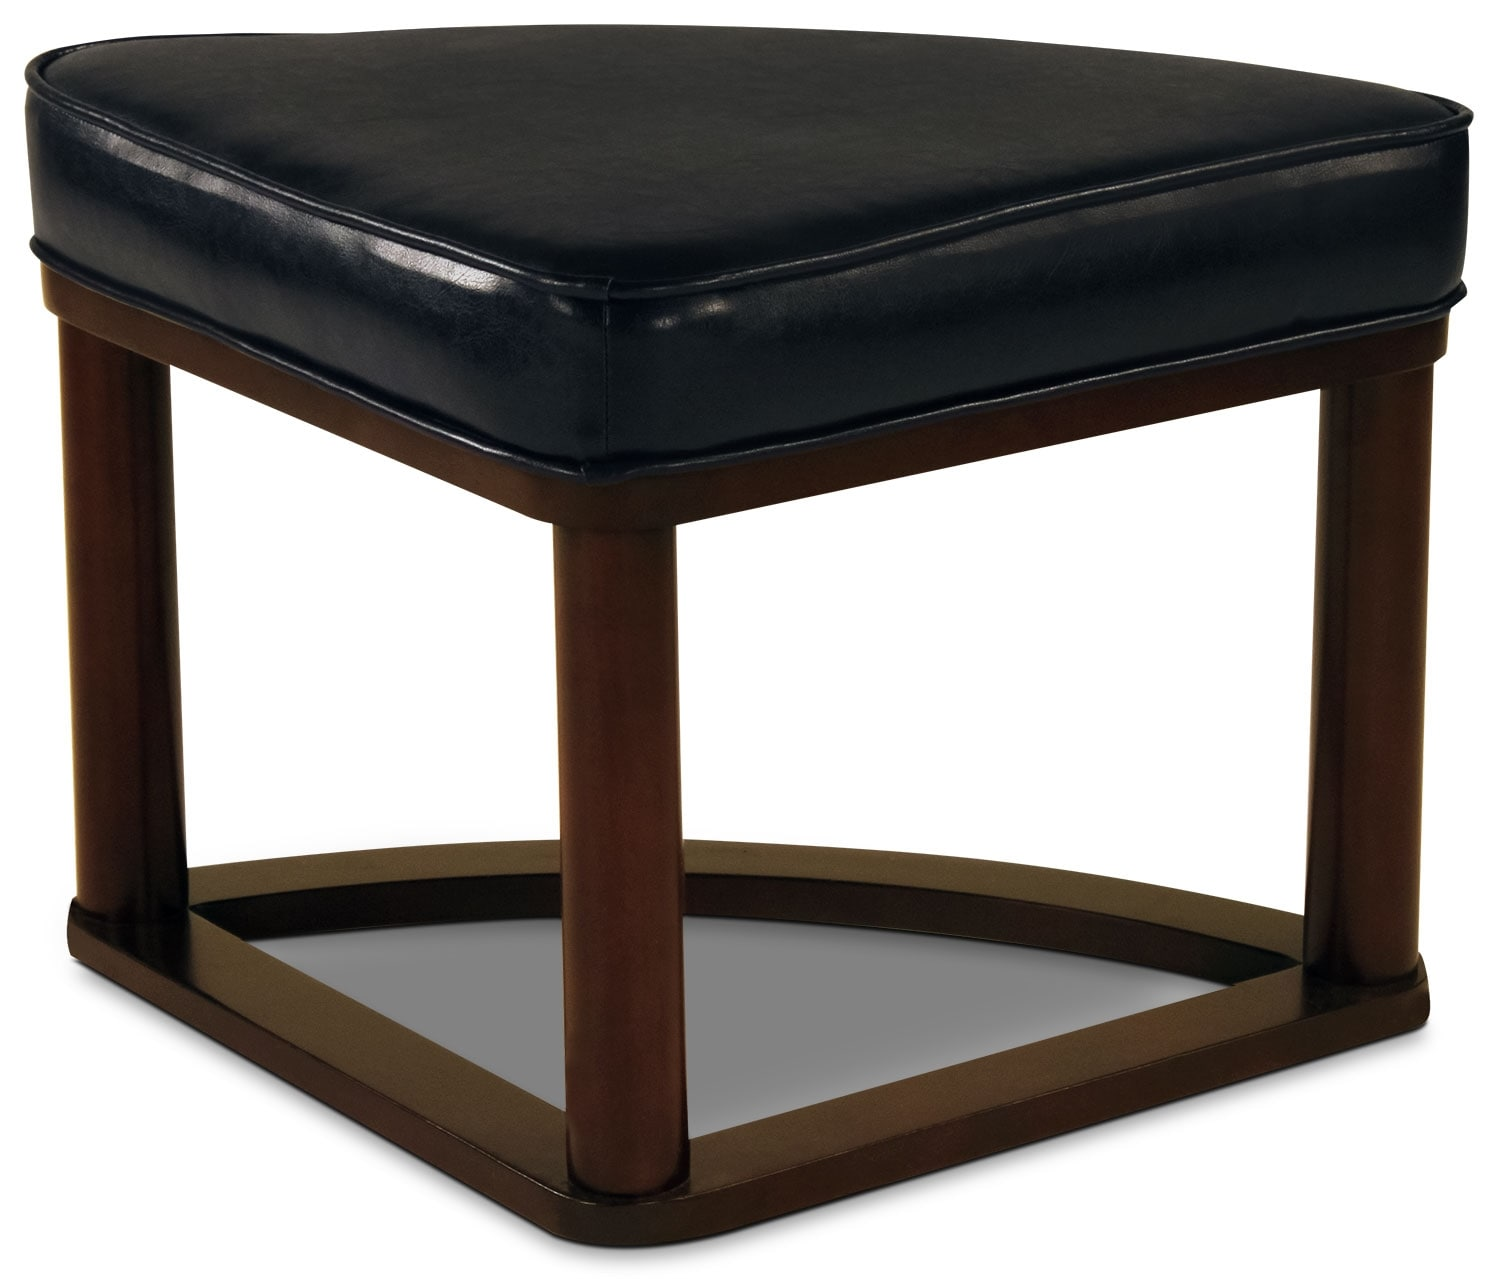 Living Room Table With Stools: Sierra Coffee Table With Four Ottoman Wedge Stools